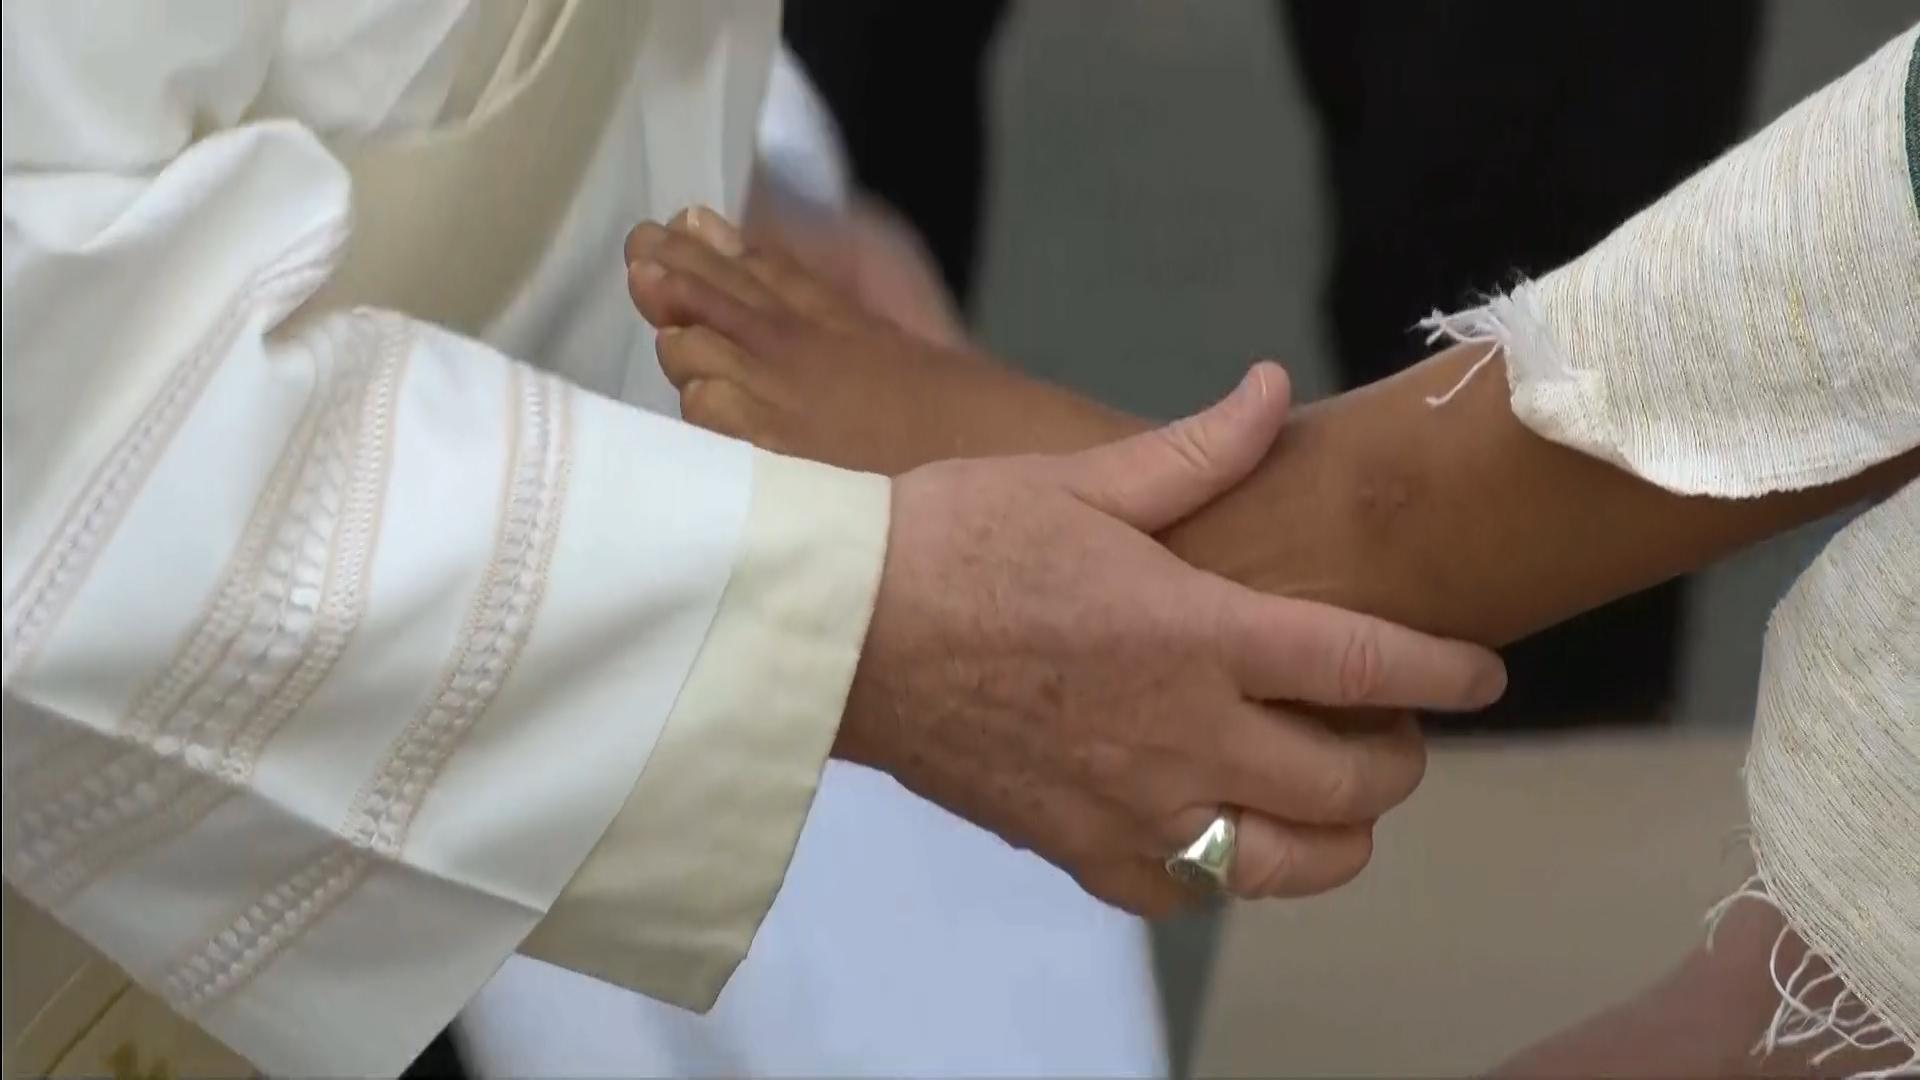 Pope Francis caresses the foot of a refugee staying in Rome, as part of the Mandatum ceremony on Holy Thursday